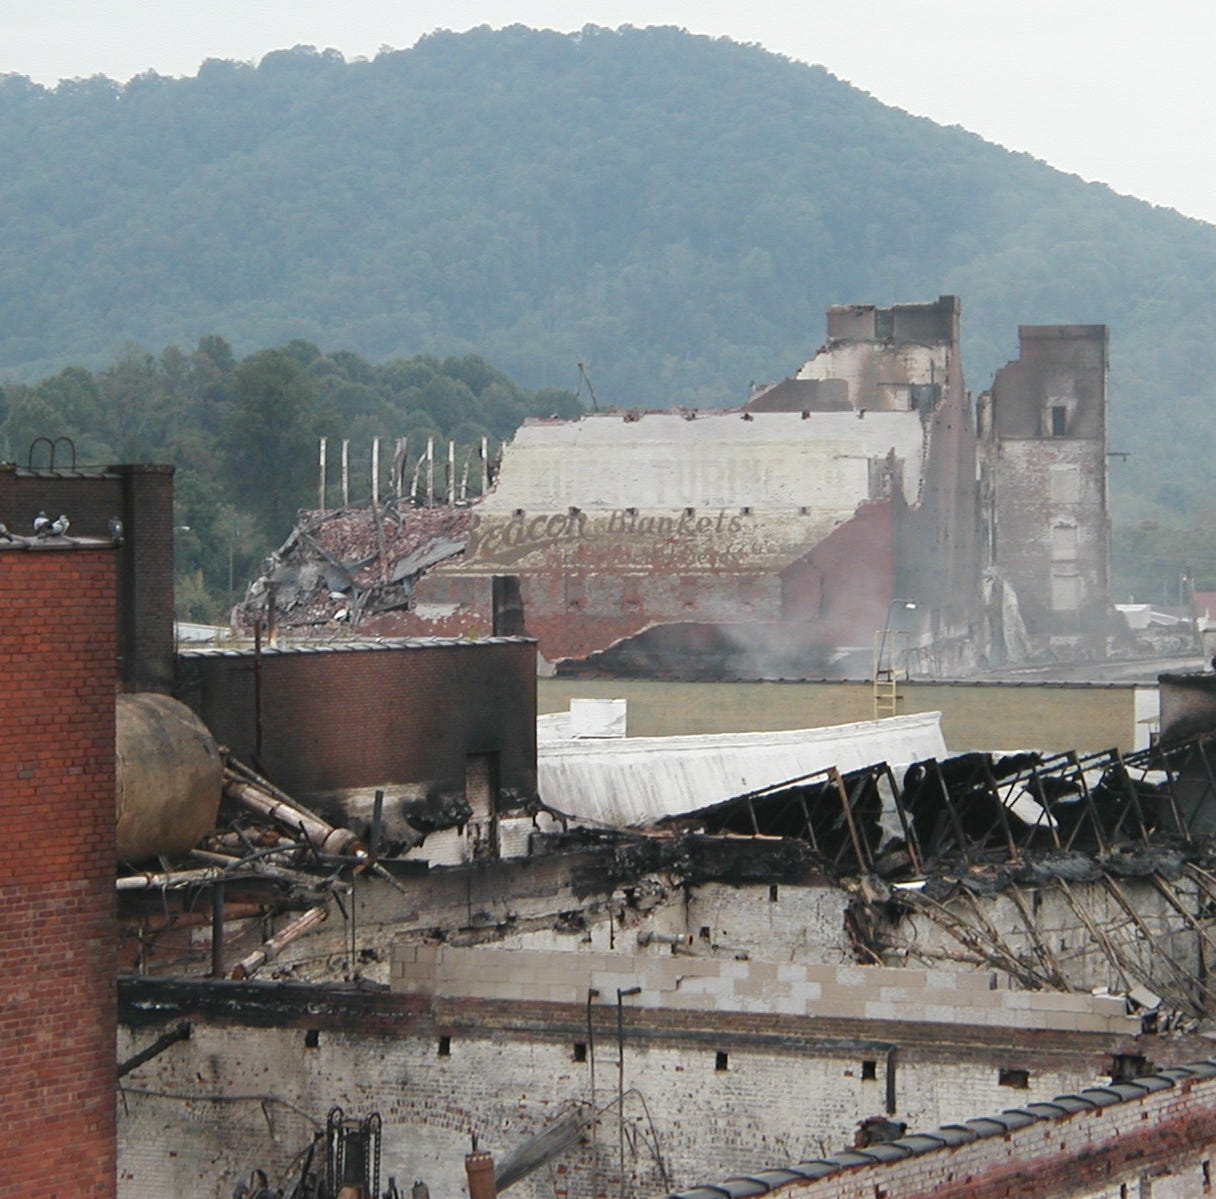 Looking back at the day that changed Swannanoa forever